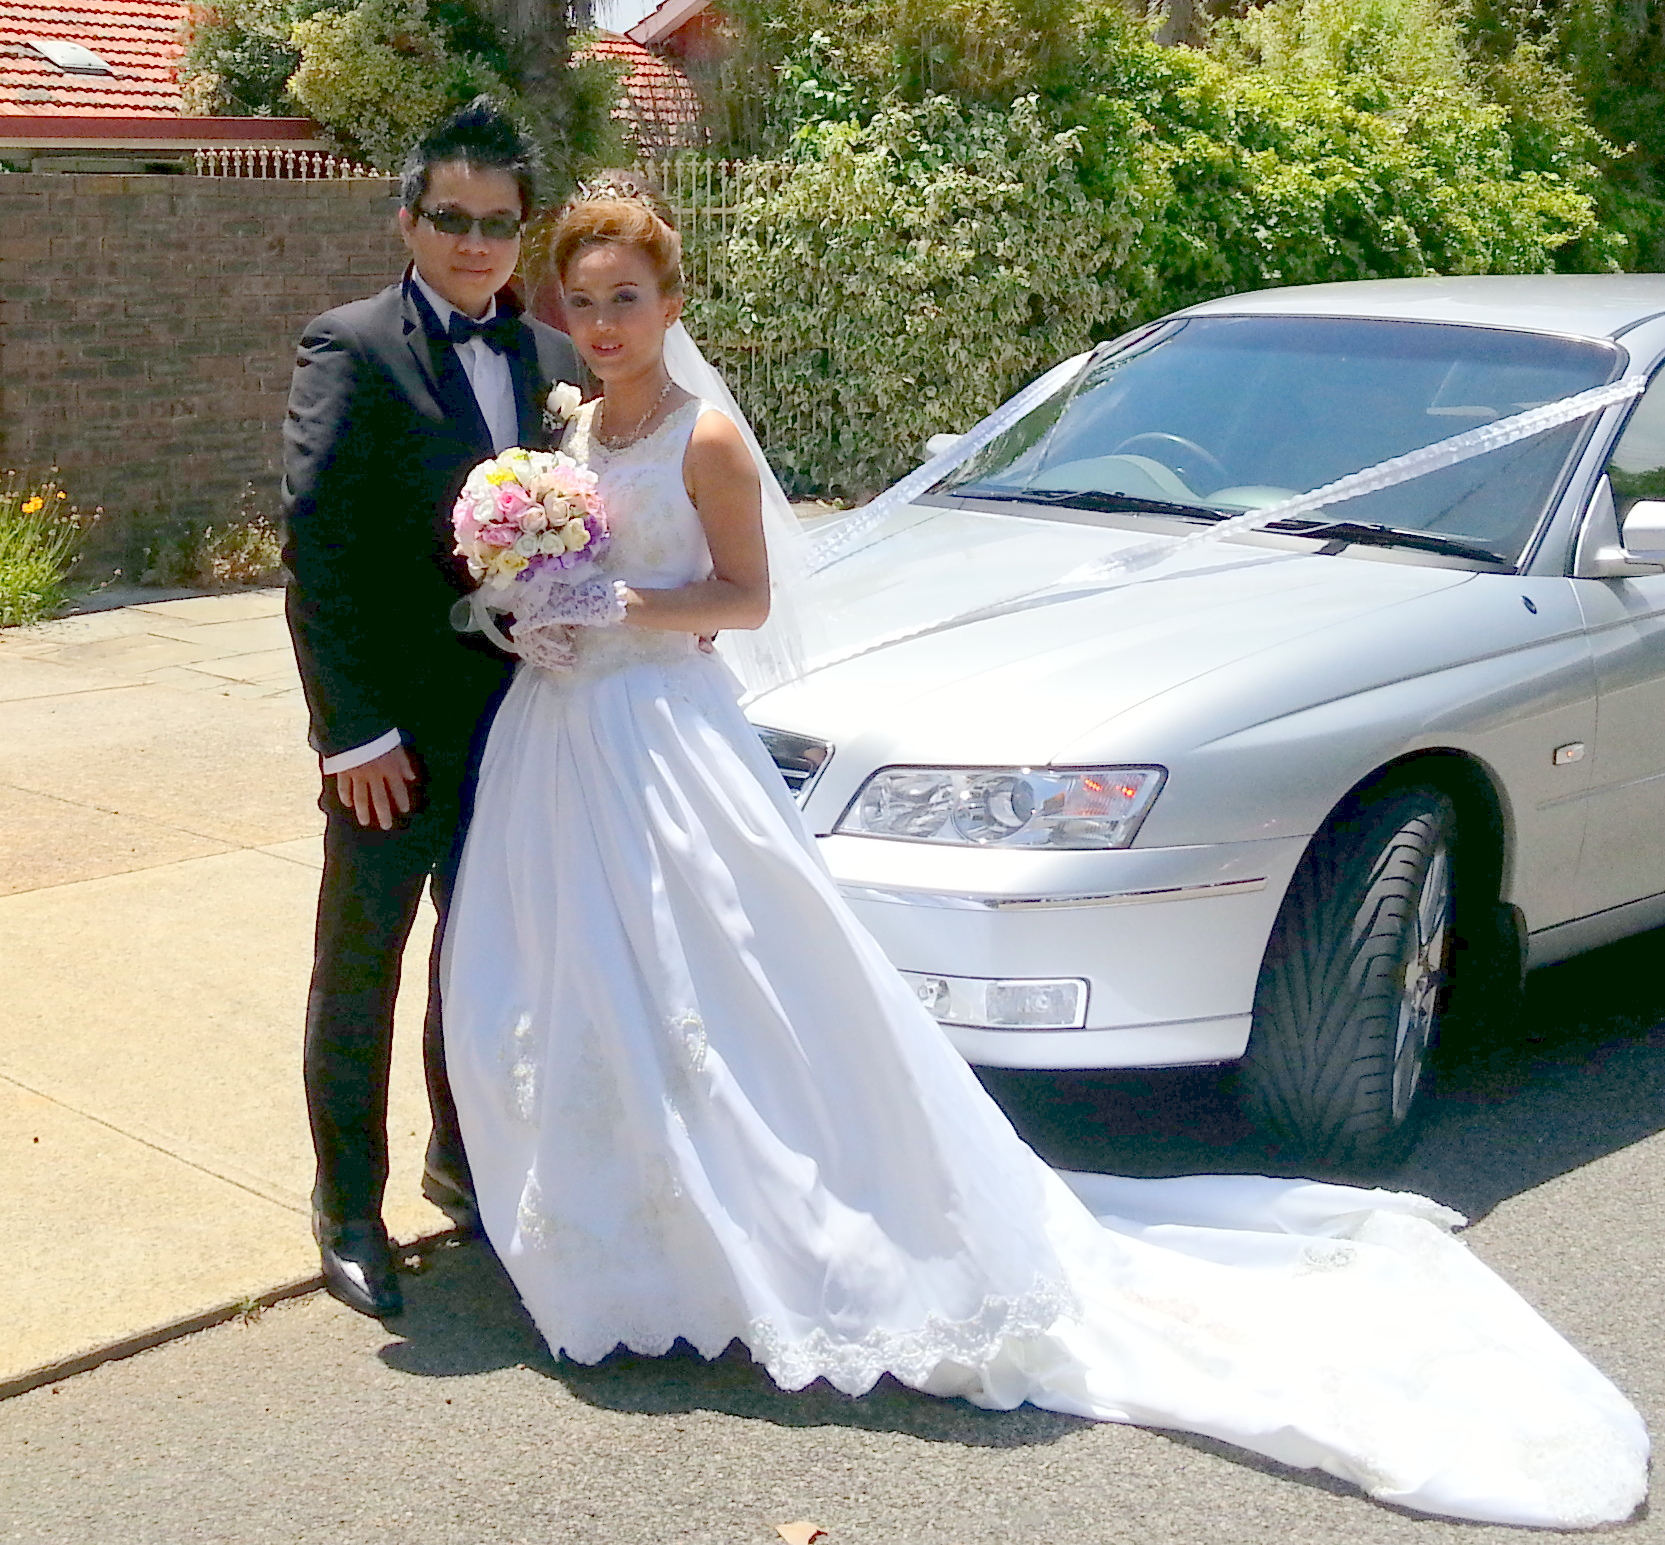 Perth Limousine Hire helping another lovely couple celebrate their special day. Limousines Unlimited also offers wedding limo hire, school ball limo hire and winery limo tours